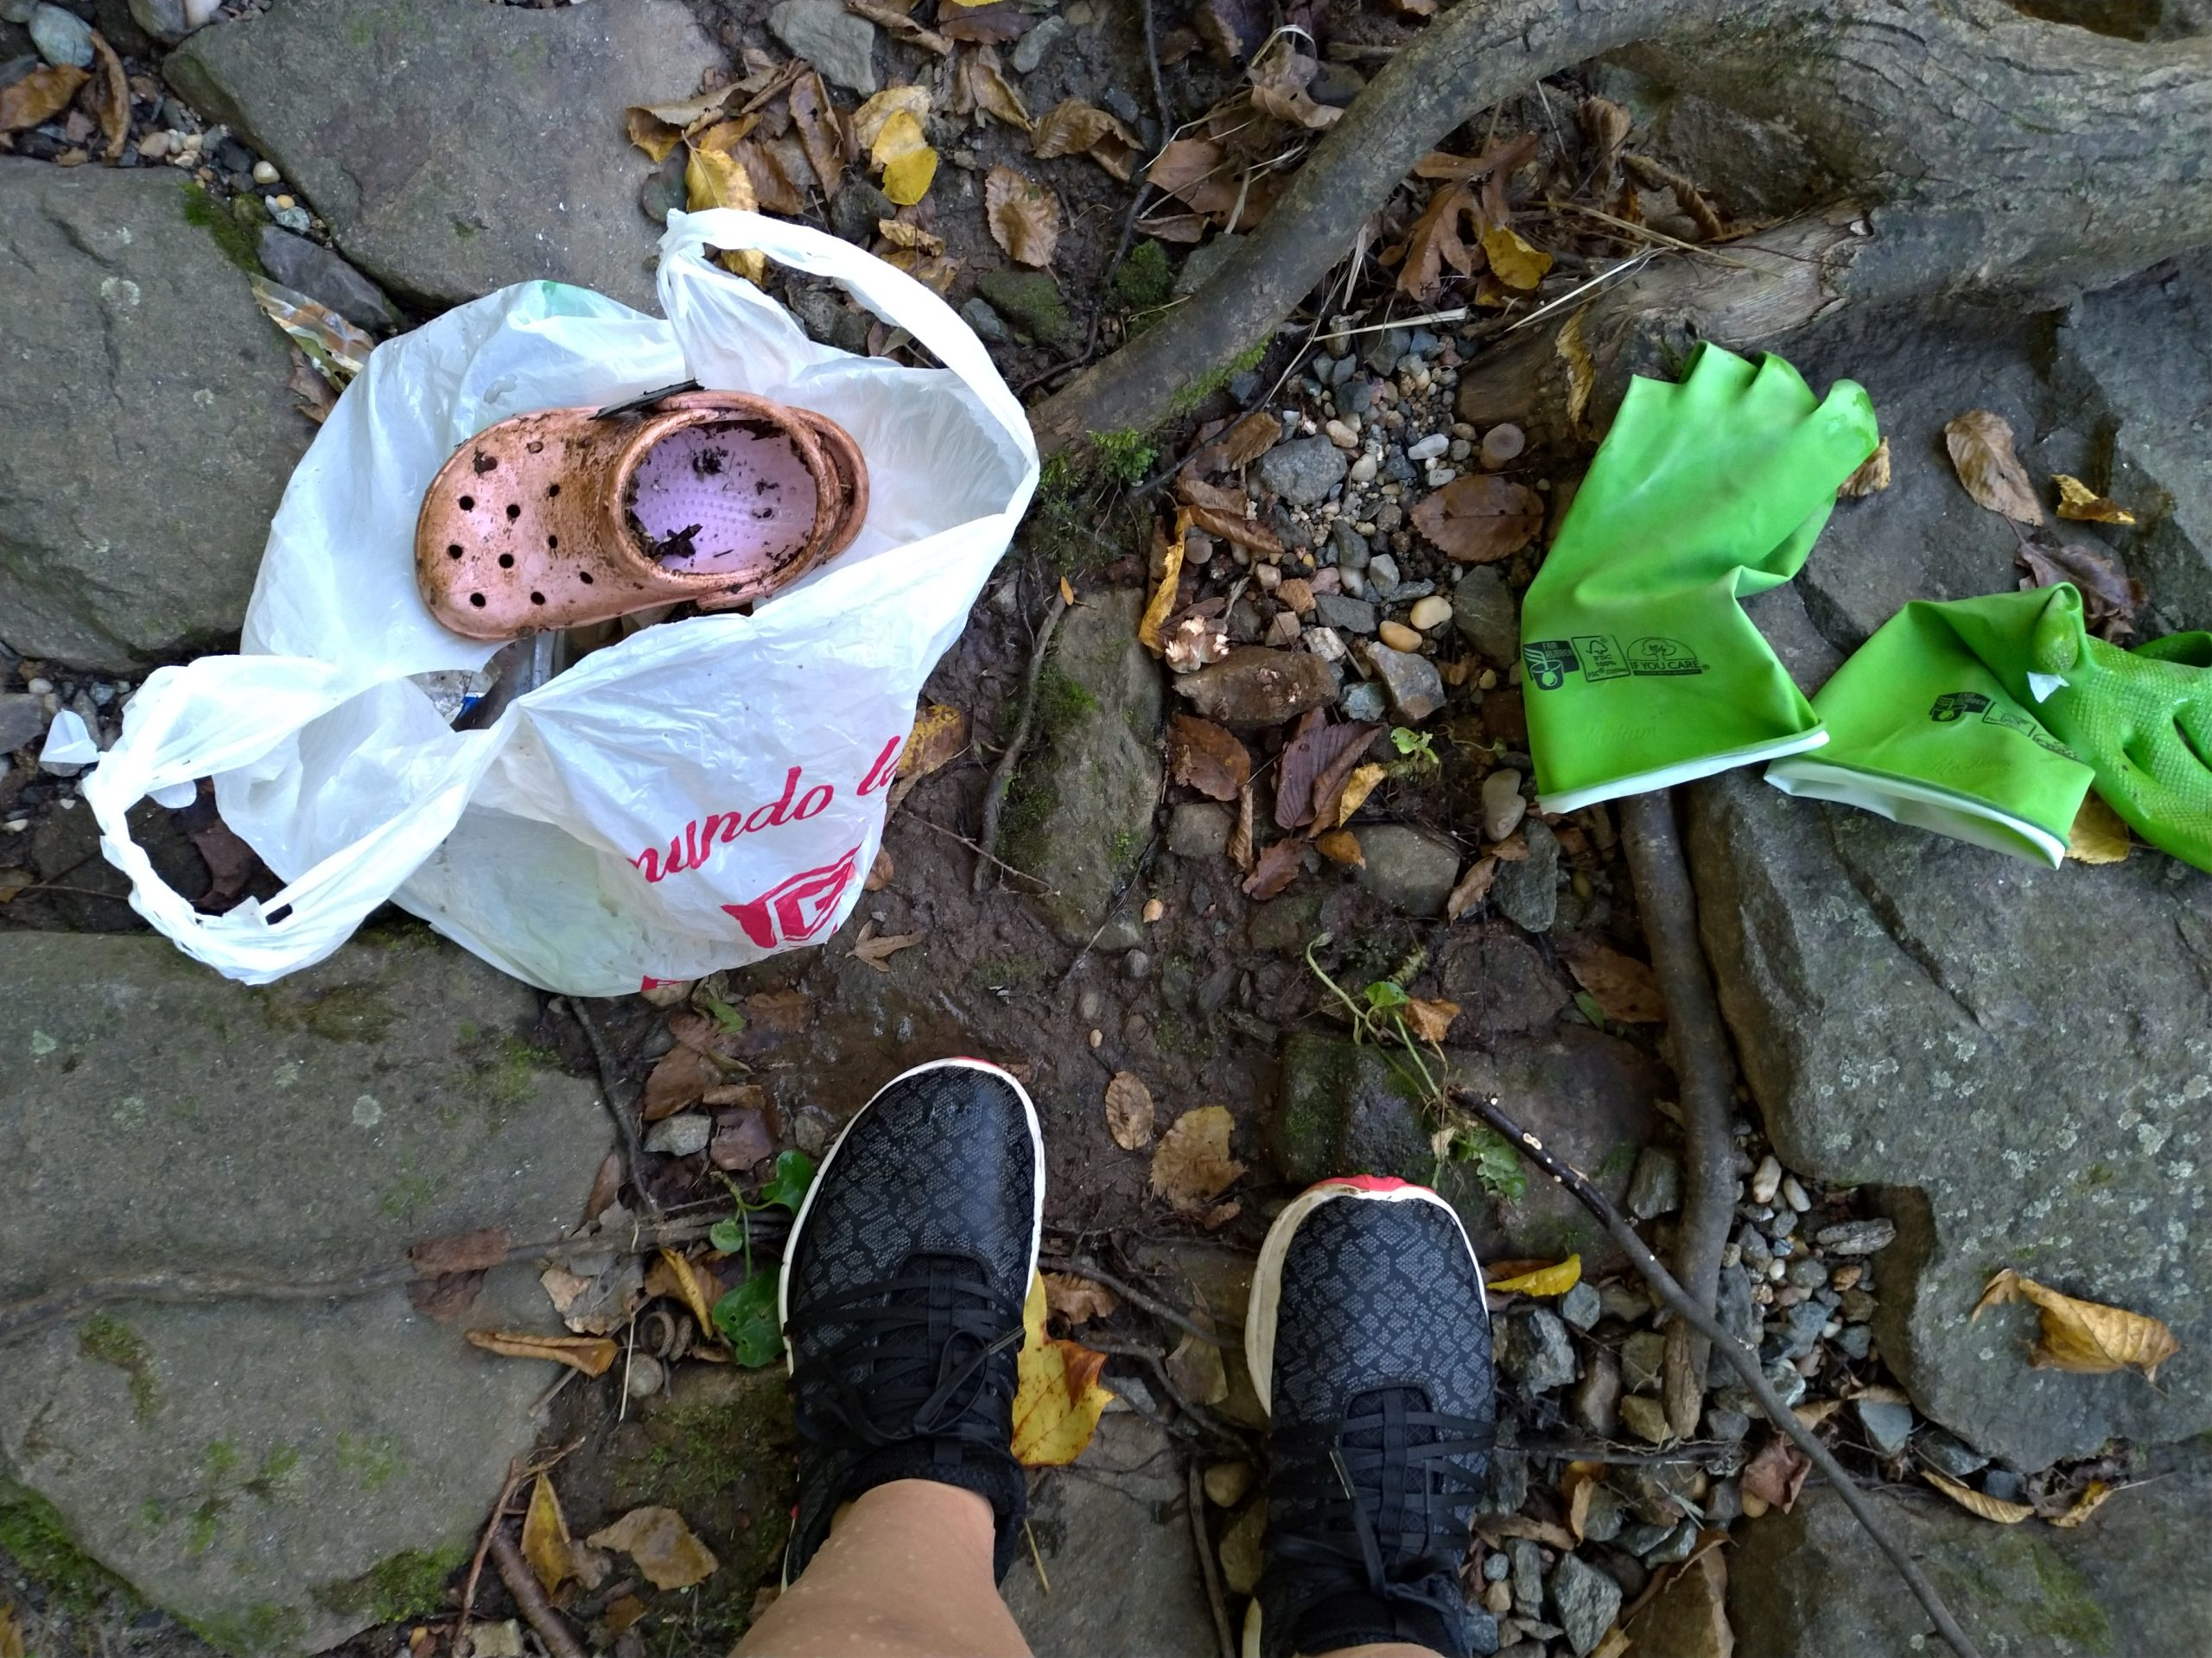 A lone pink croc shoe amid the debris collected at last Fall's Sweep the Creek.